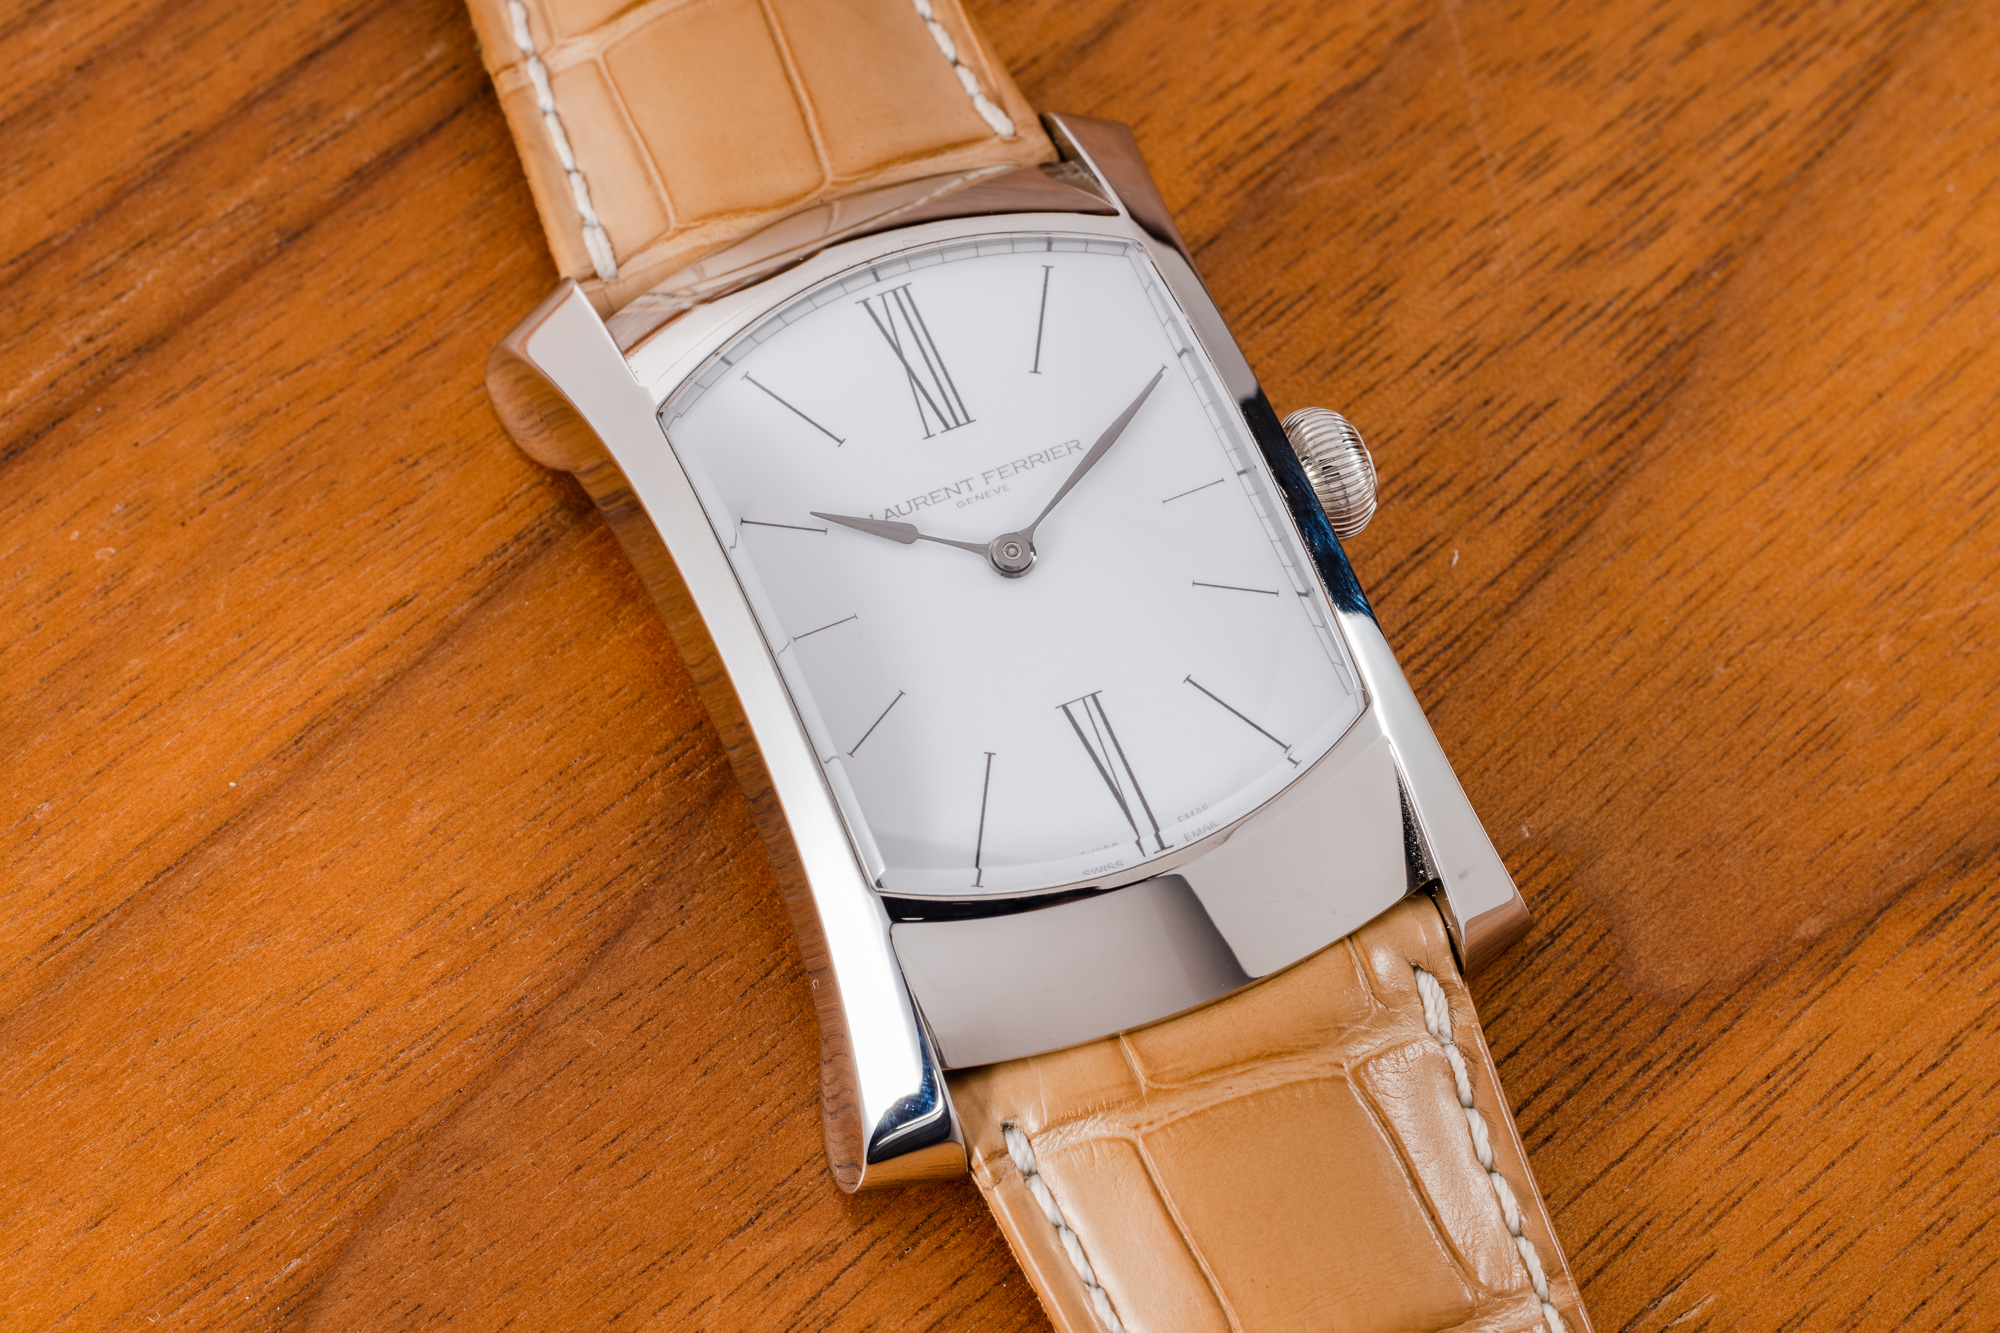 Laurent_Ferrier_00004.jpg